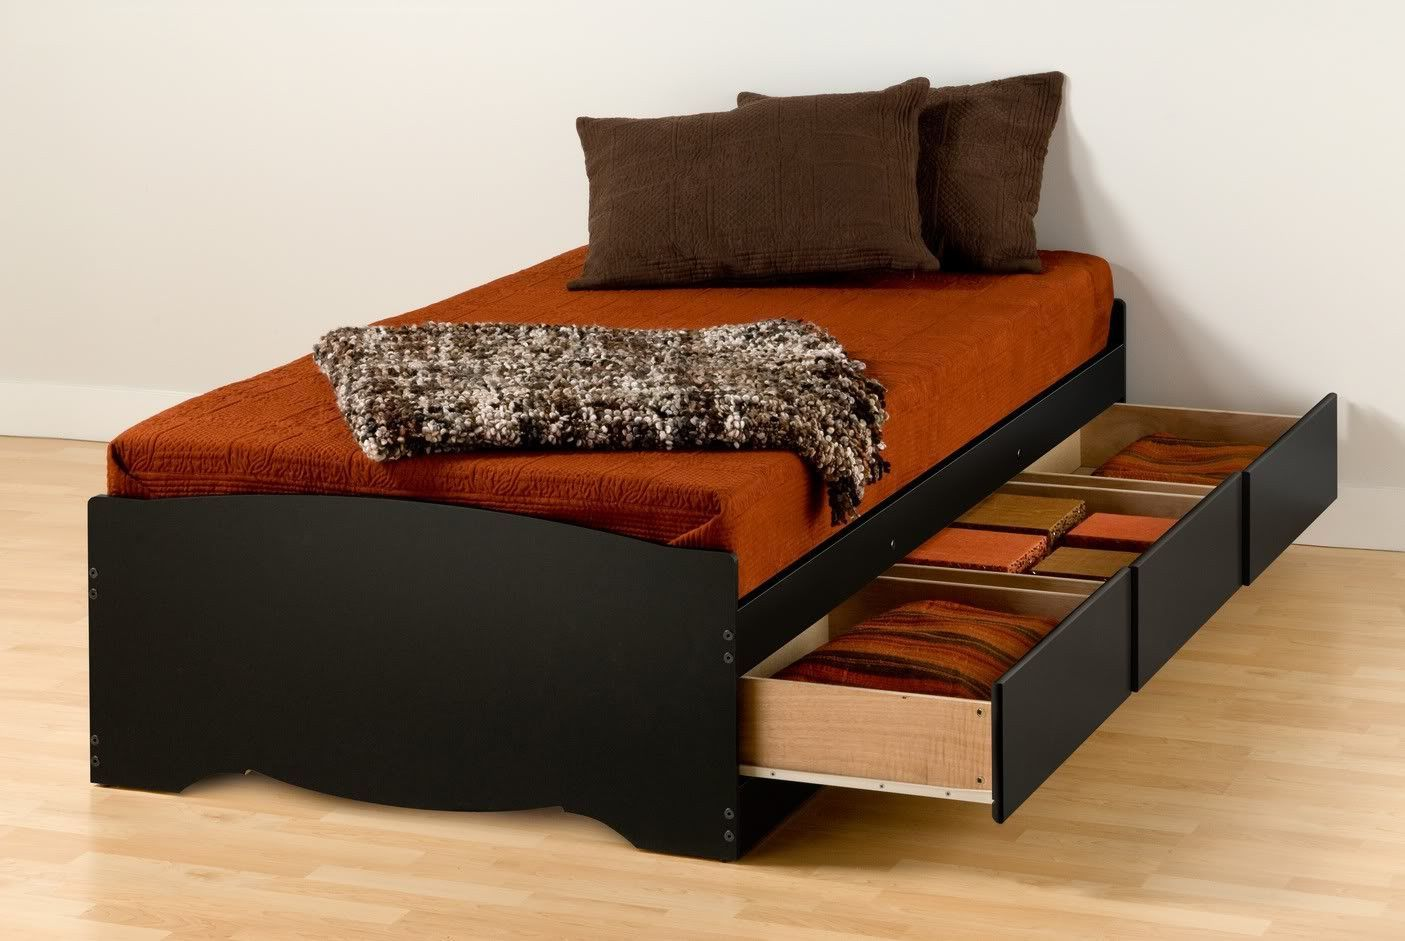 With its extra length and storage space, the Twin XL Mate